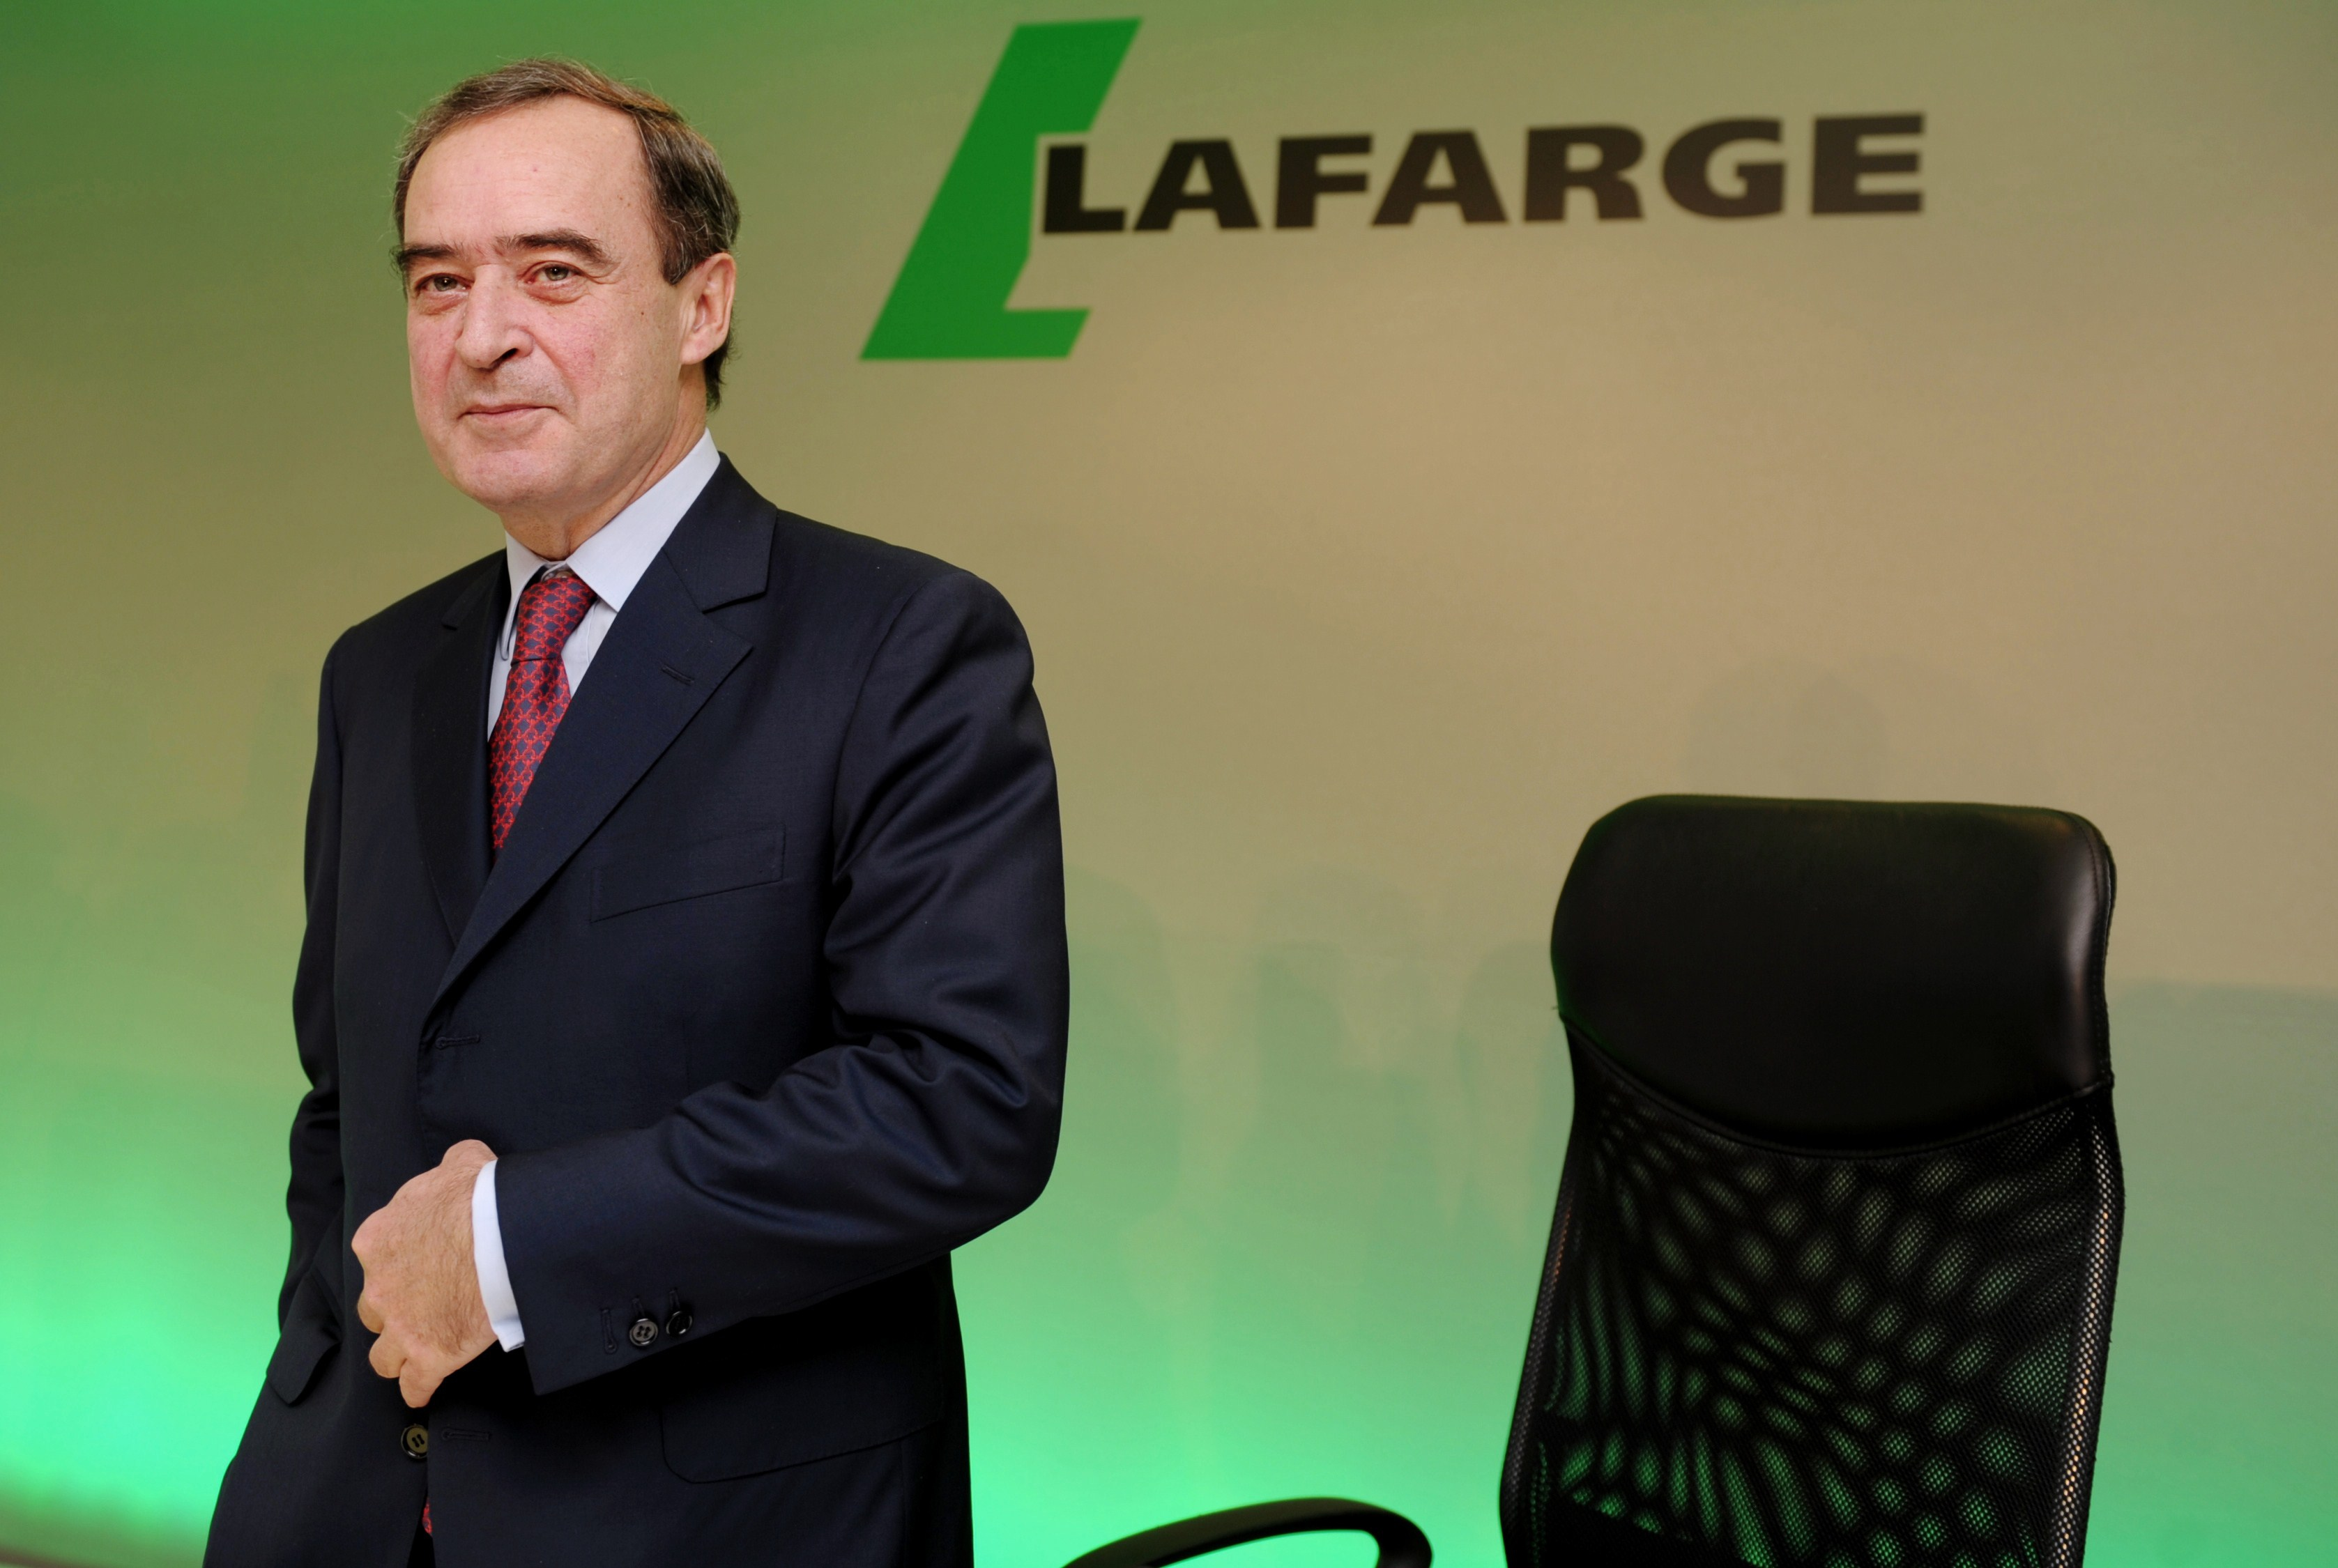 FRANCE-CONSTRUCTION-COMPANYLAFARGE-RESULTS